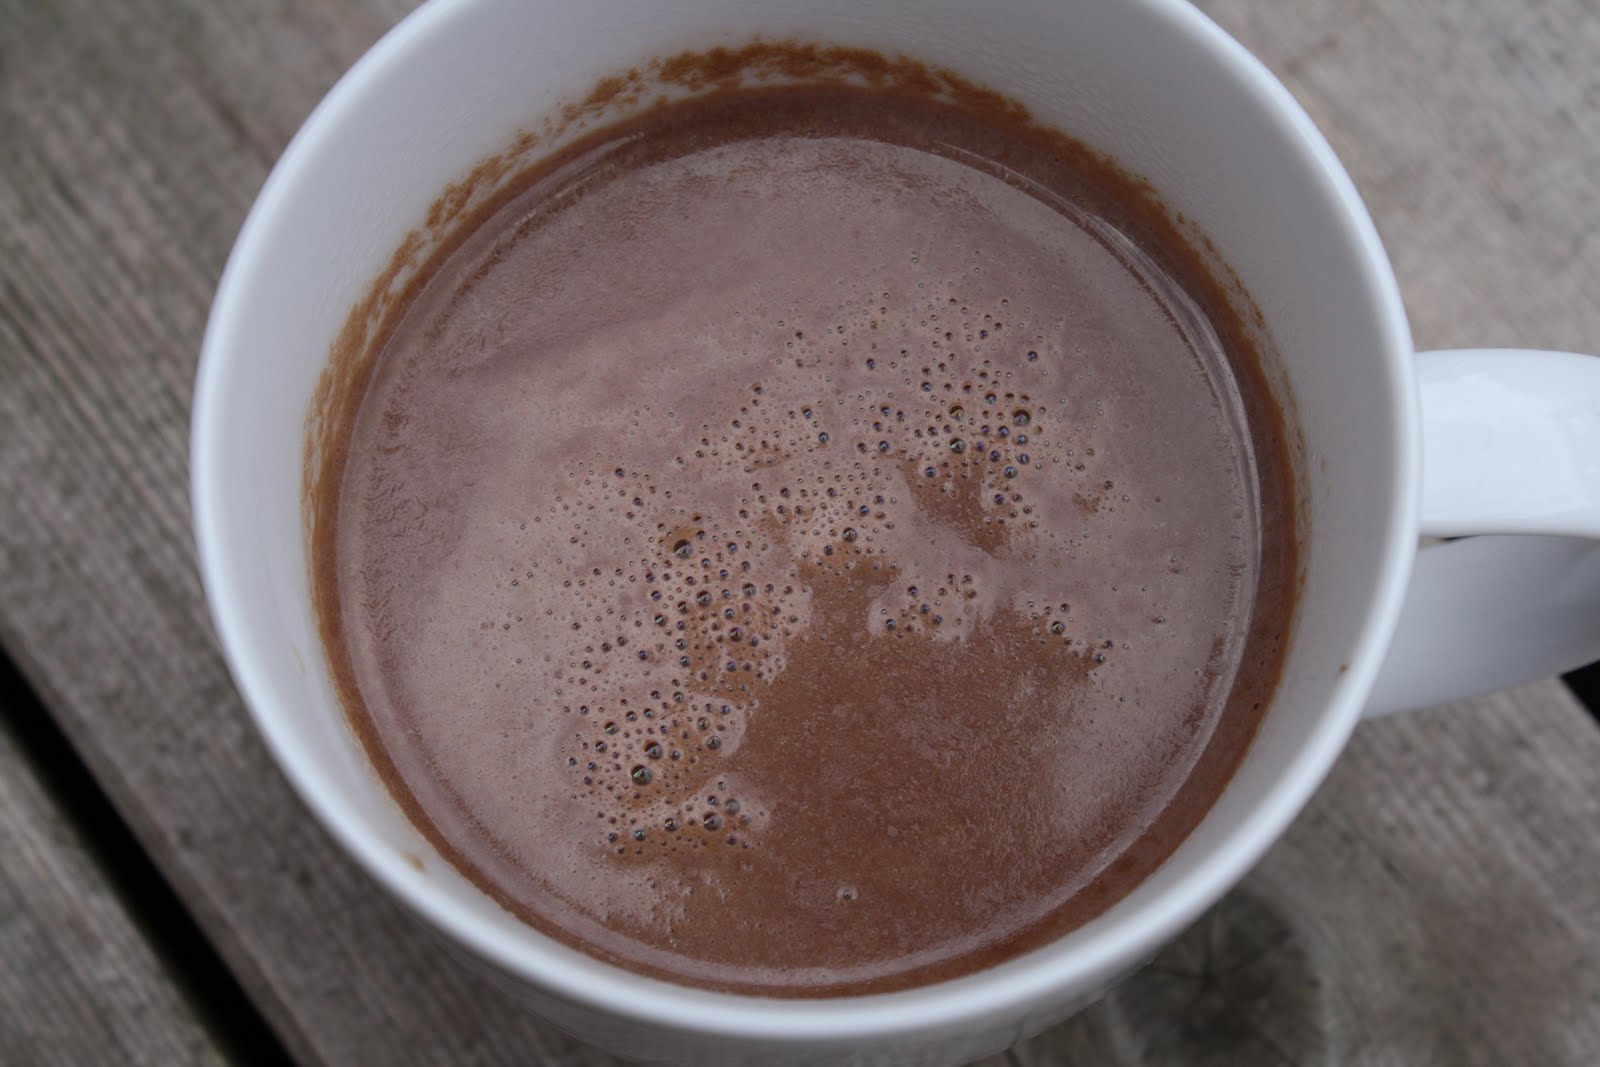 ... sprinkling of cinnamon and you have yourself a perfect hot chocolate